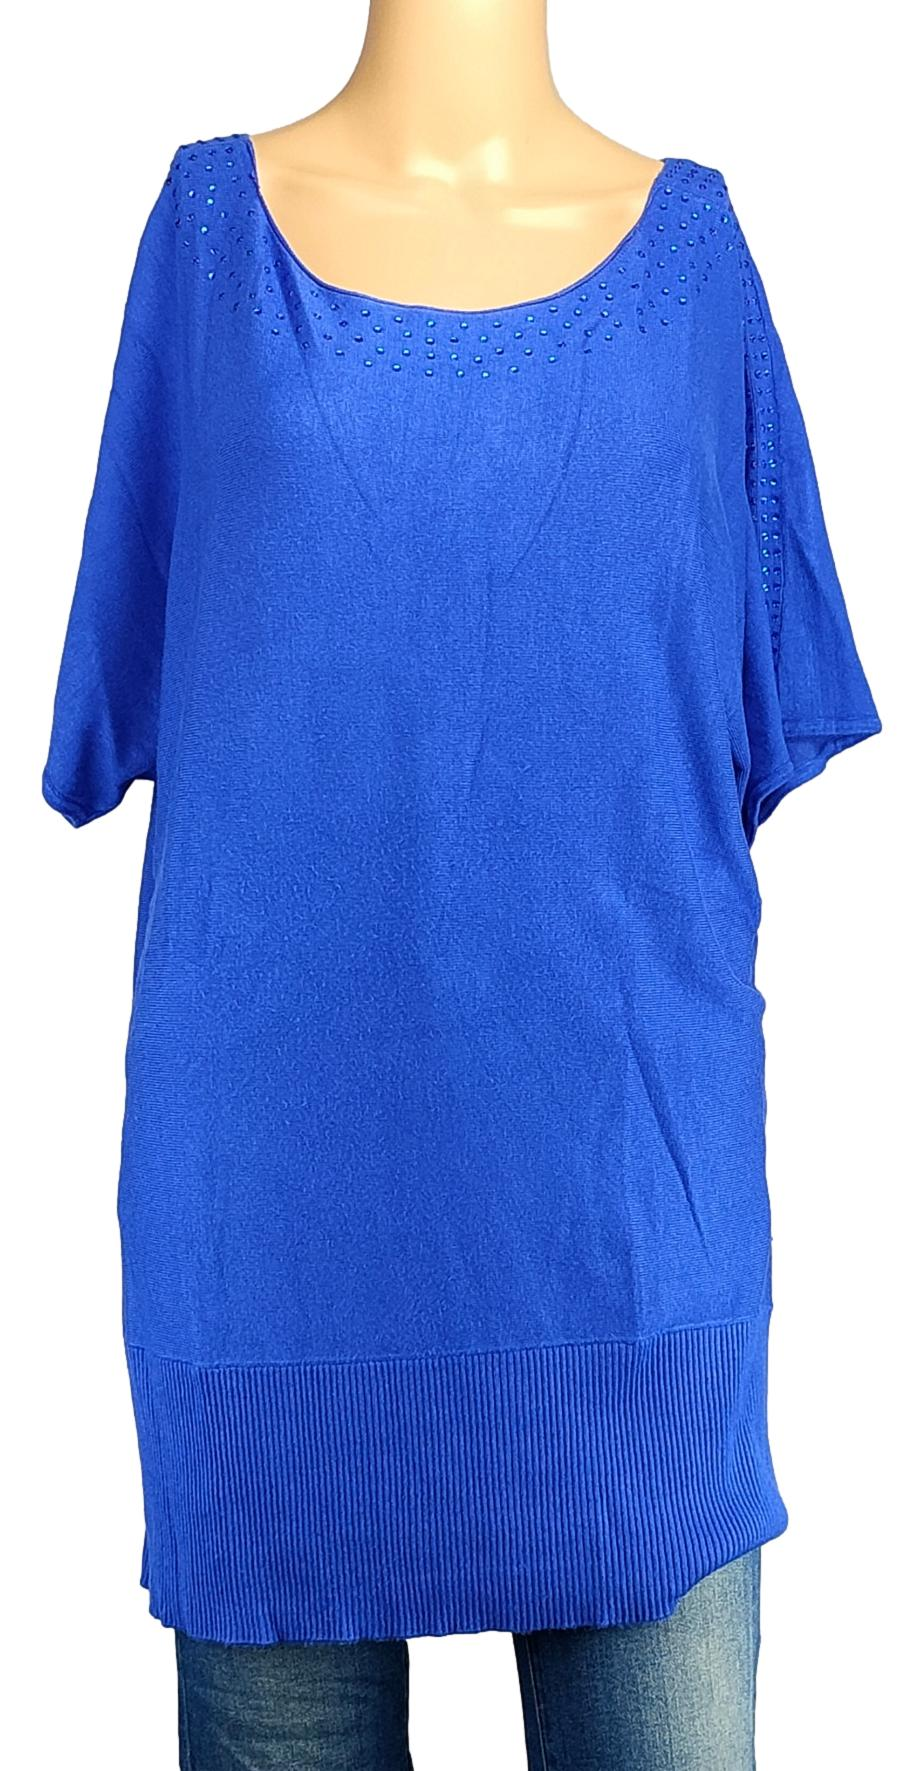 Pull Jacqueline Riu - Taille 38